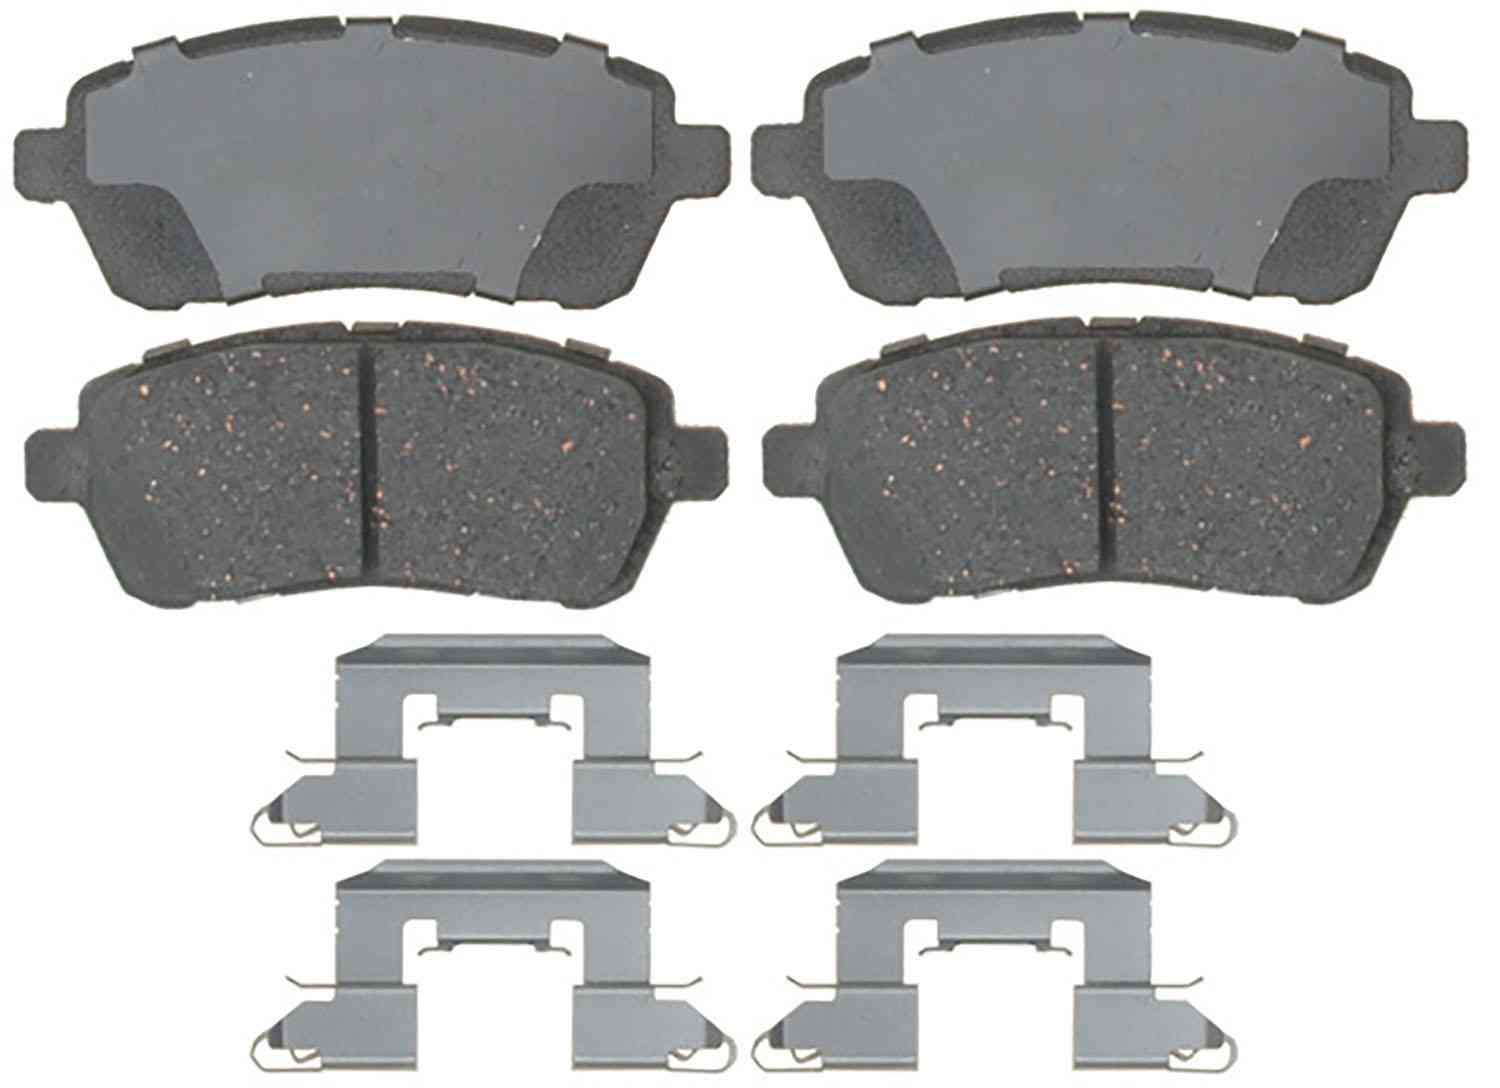 ACDELCO PROFESSIONAL BRAKES - Ceramic Disc Brake Pad (Front) - ADU 17D1454CH